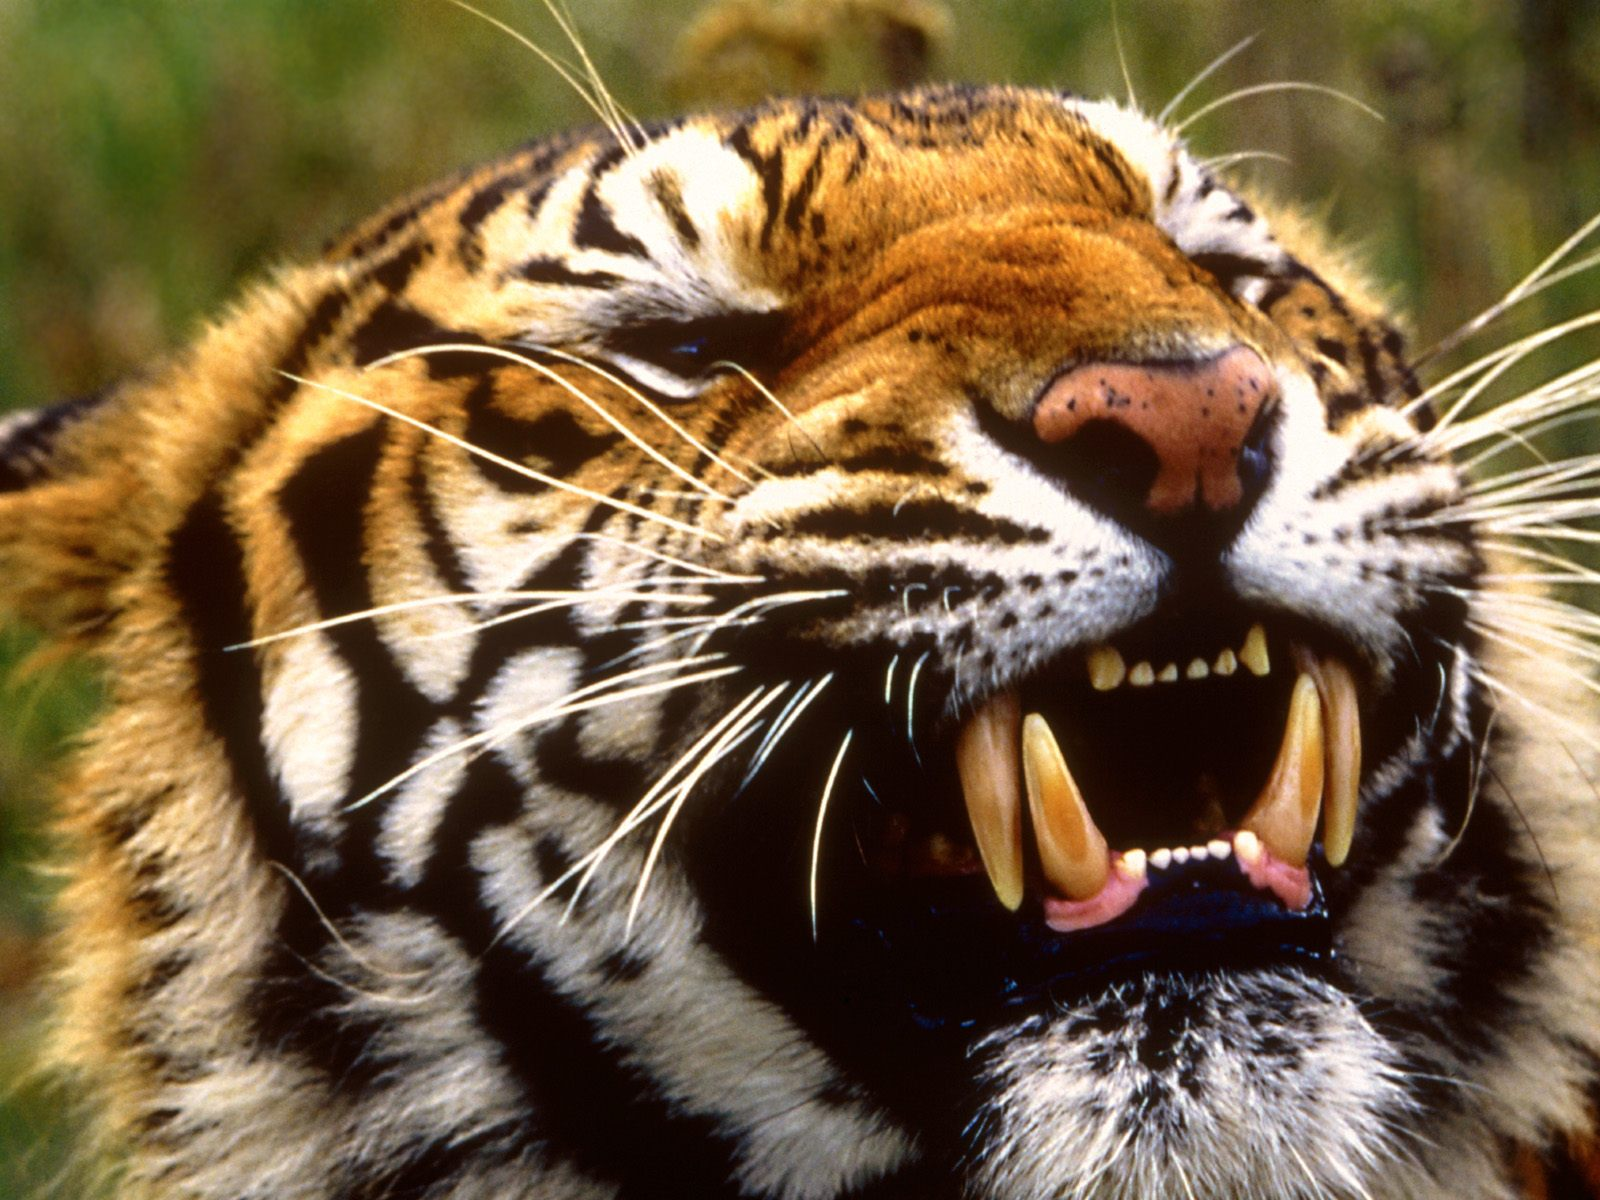 http://2.bp.blogspot.com/-f0qOF2Pig_s/TZVvNQ4JT6I/AAAAAAAAI2I/vfxUO5t15hQ/s1600/tiger_wallpapers_hd_bengal-tiger-Desktop-wallpaper.jpg